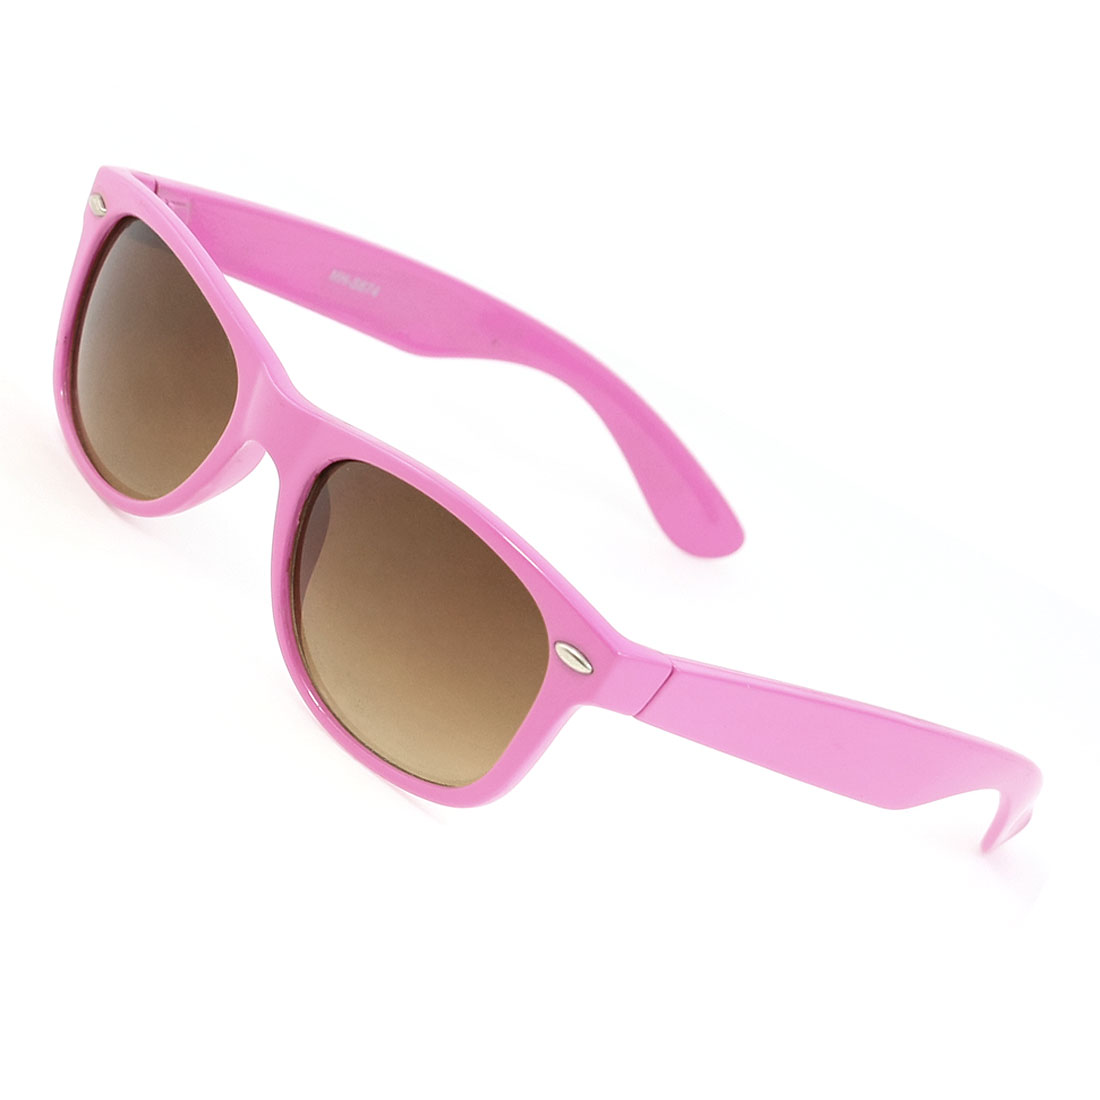 Brown Square Shape Lens Pink Plastic Folding Arms Sunglasses for Ladies